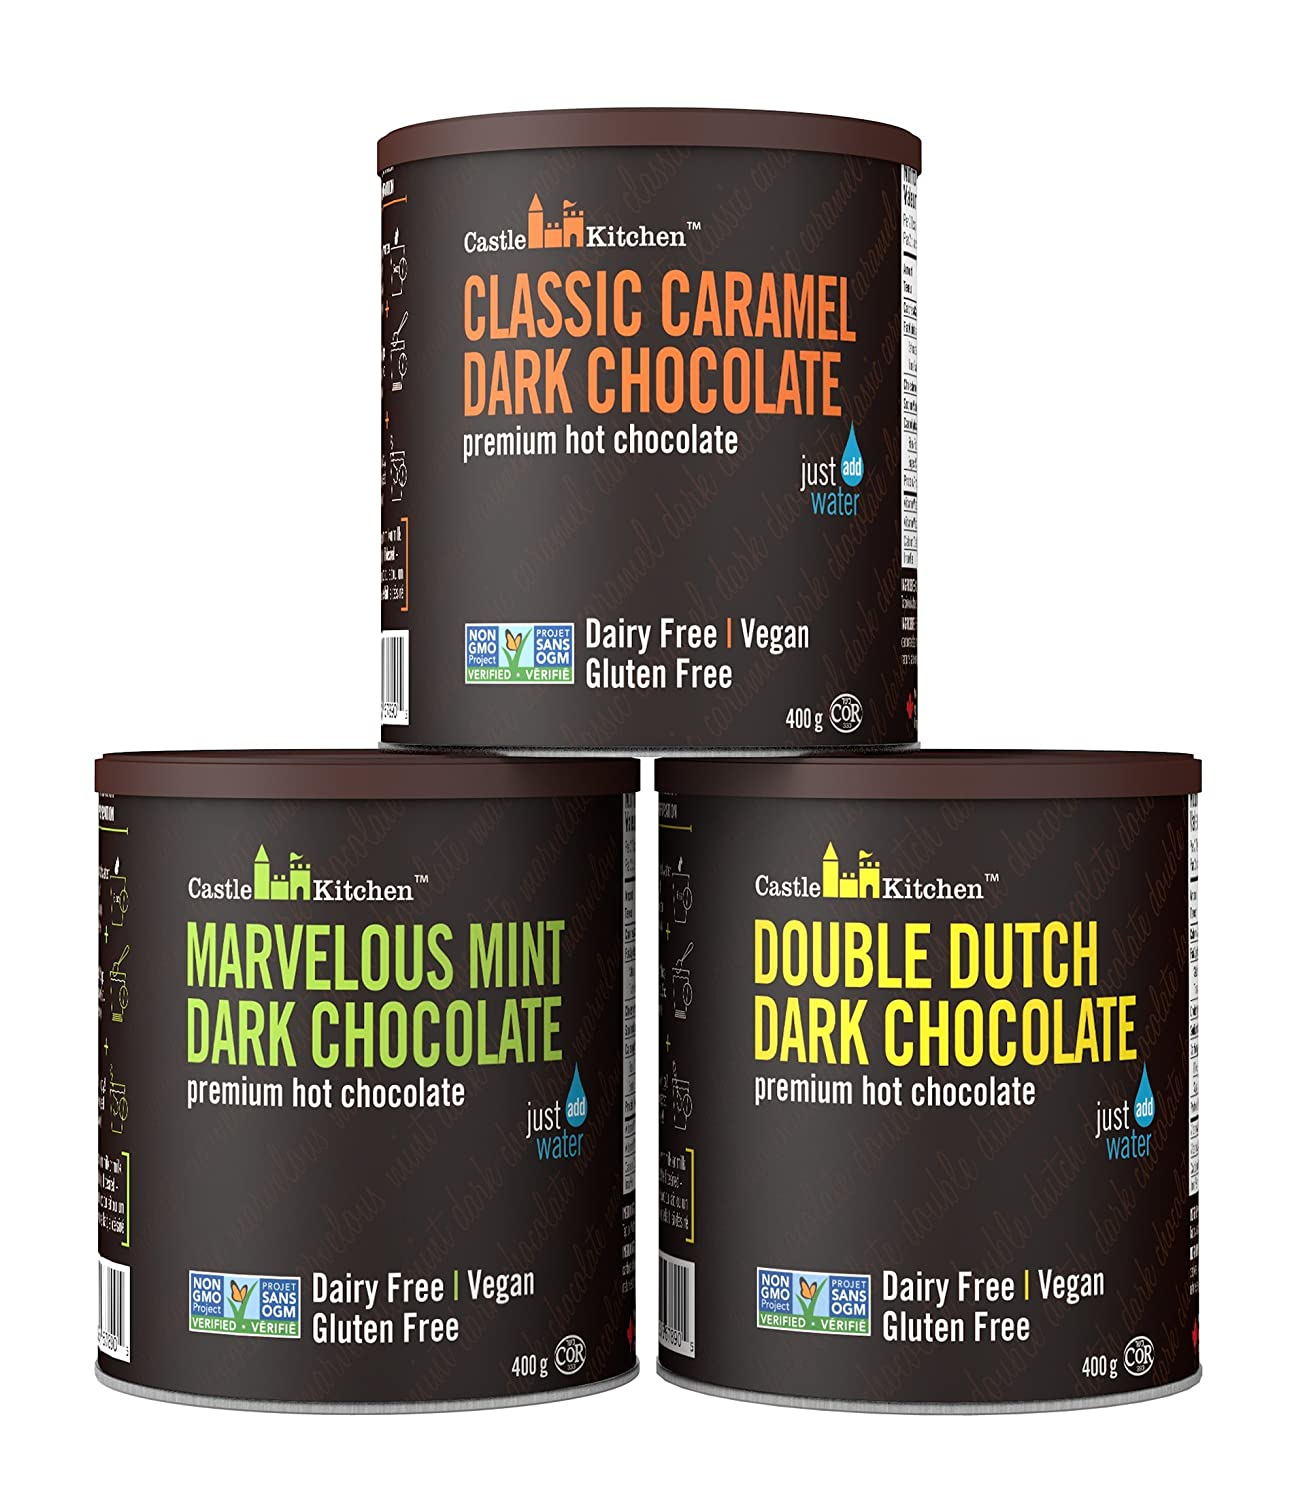 Castle Kitchen Natural Hot Chocolate Mix High quality Ranking TOP20 - Oz Pack 42 Variety